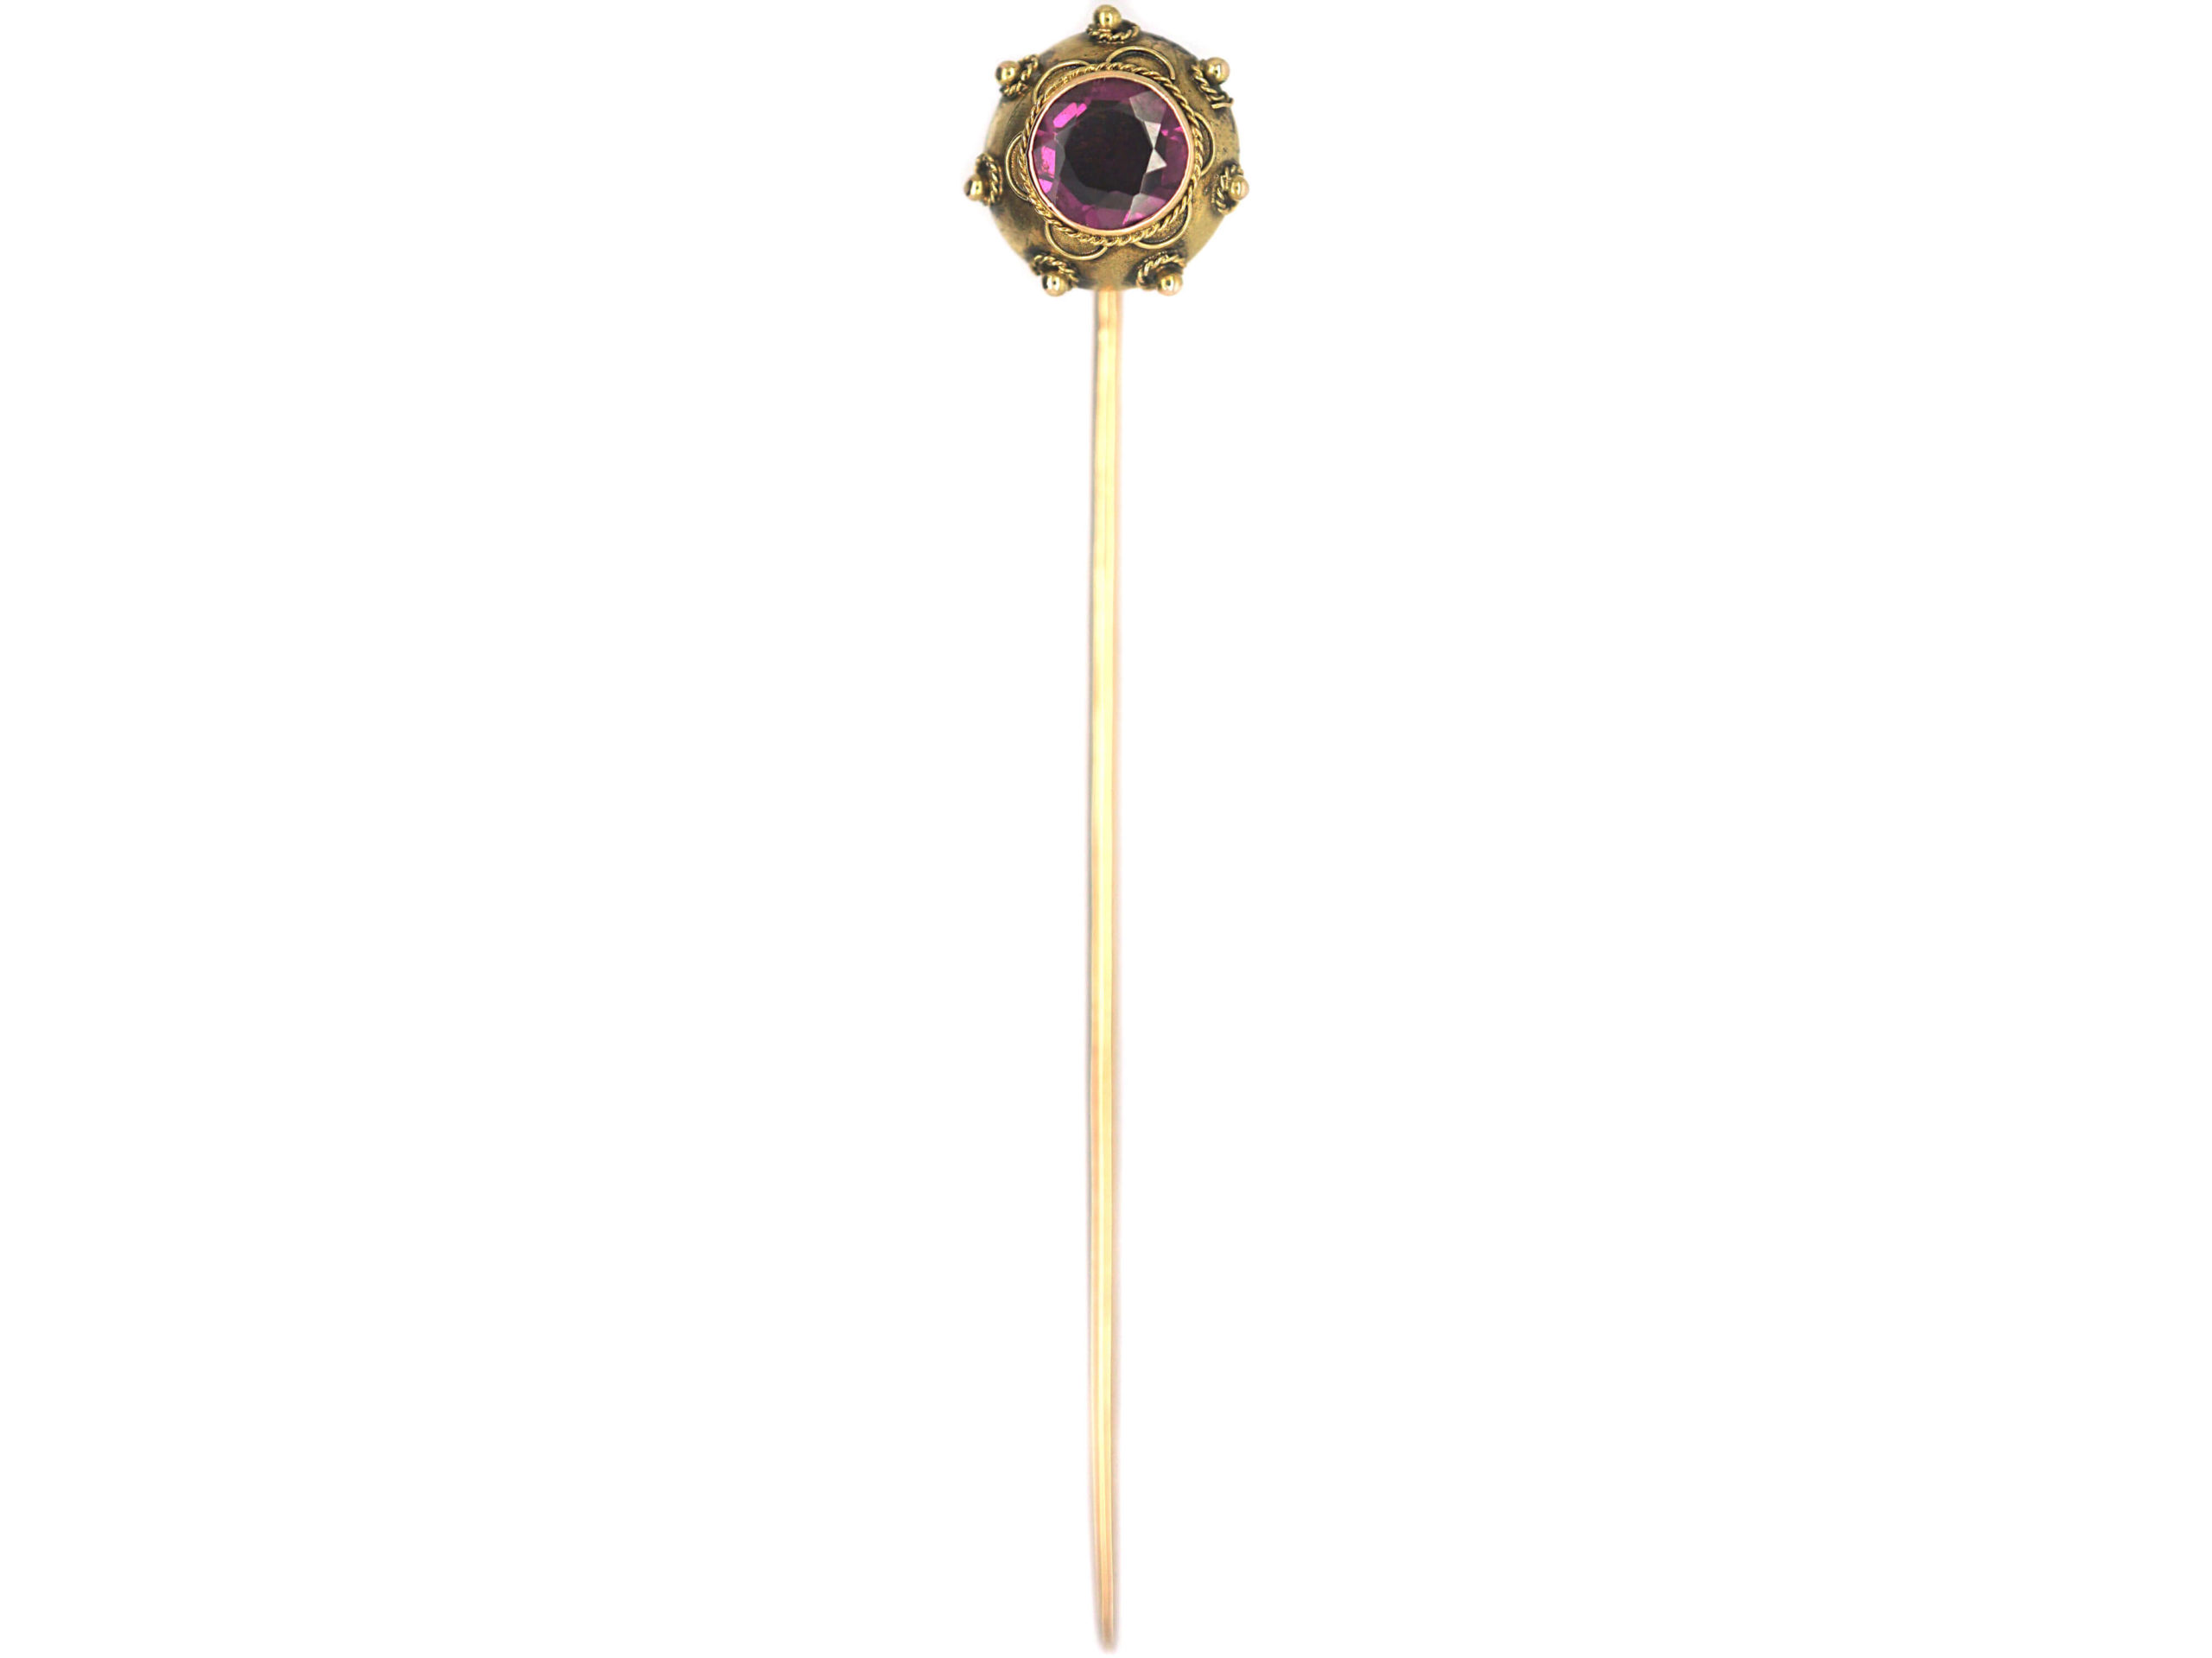 Victorian 15ct Gold Etruscan Style Tie Pin set with a Garnet